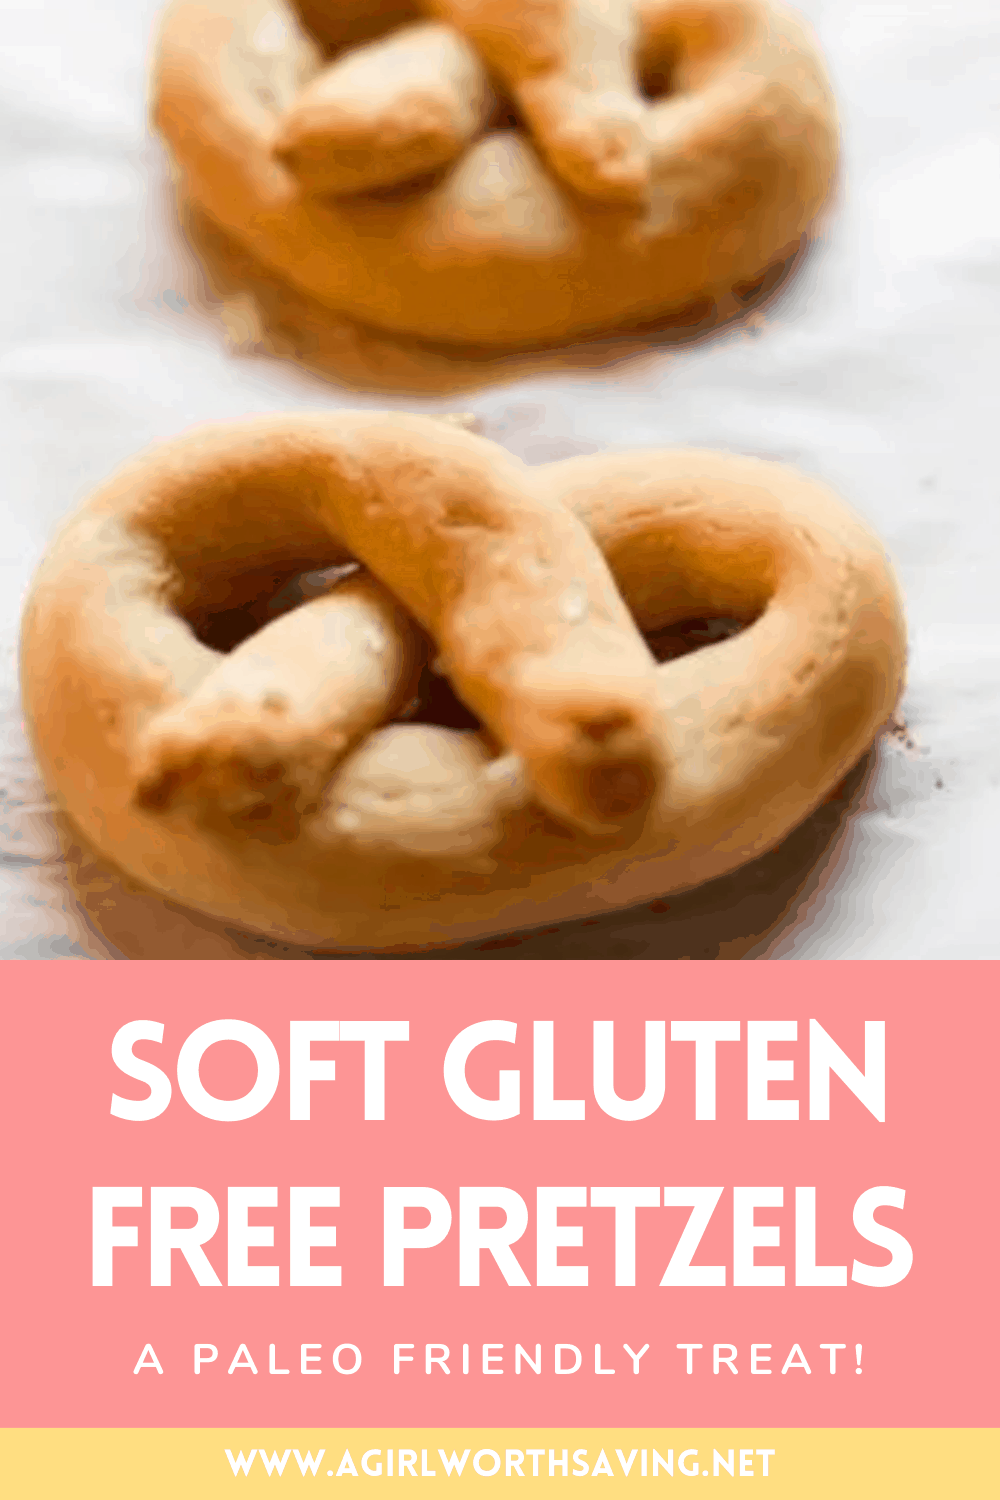 The perfect Gluten Free Pretzels that are soft, just like the ones at the ballpark! Grain-free, it's made with Tapioca flour and coconut flour and is yeast-free.